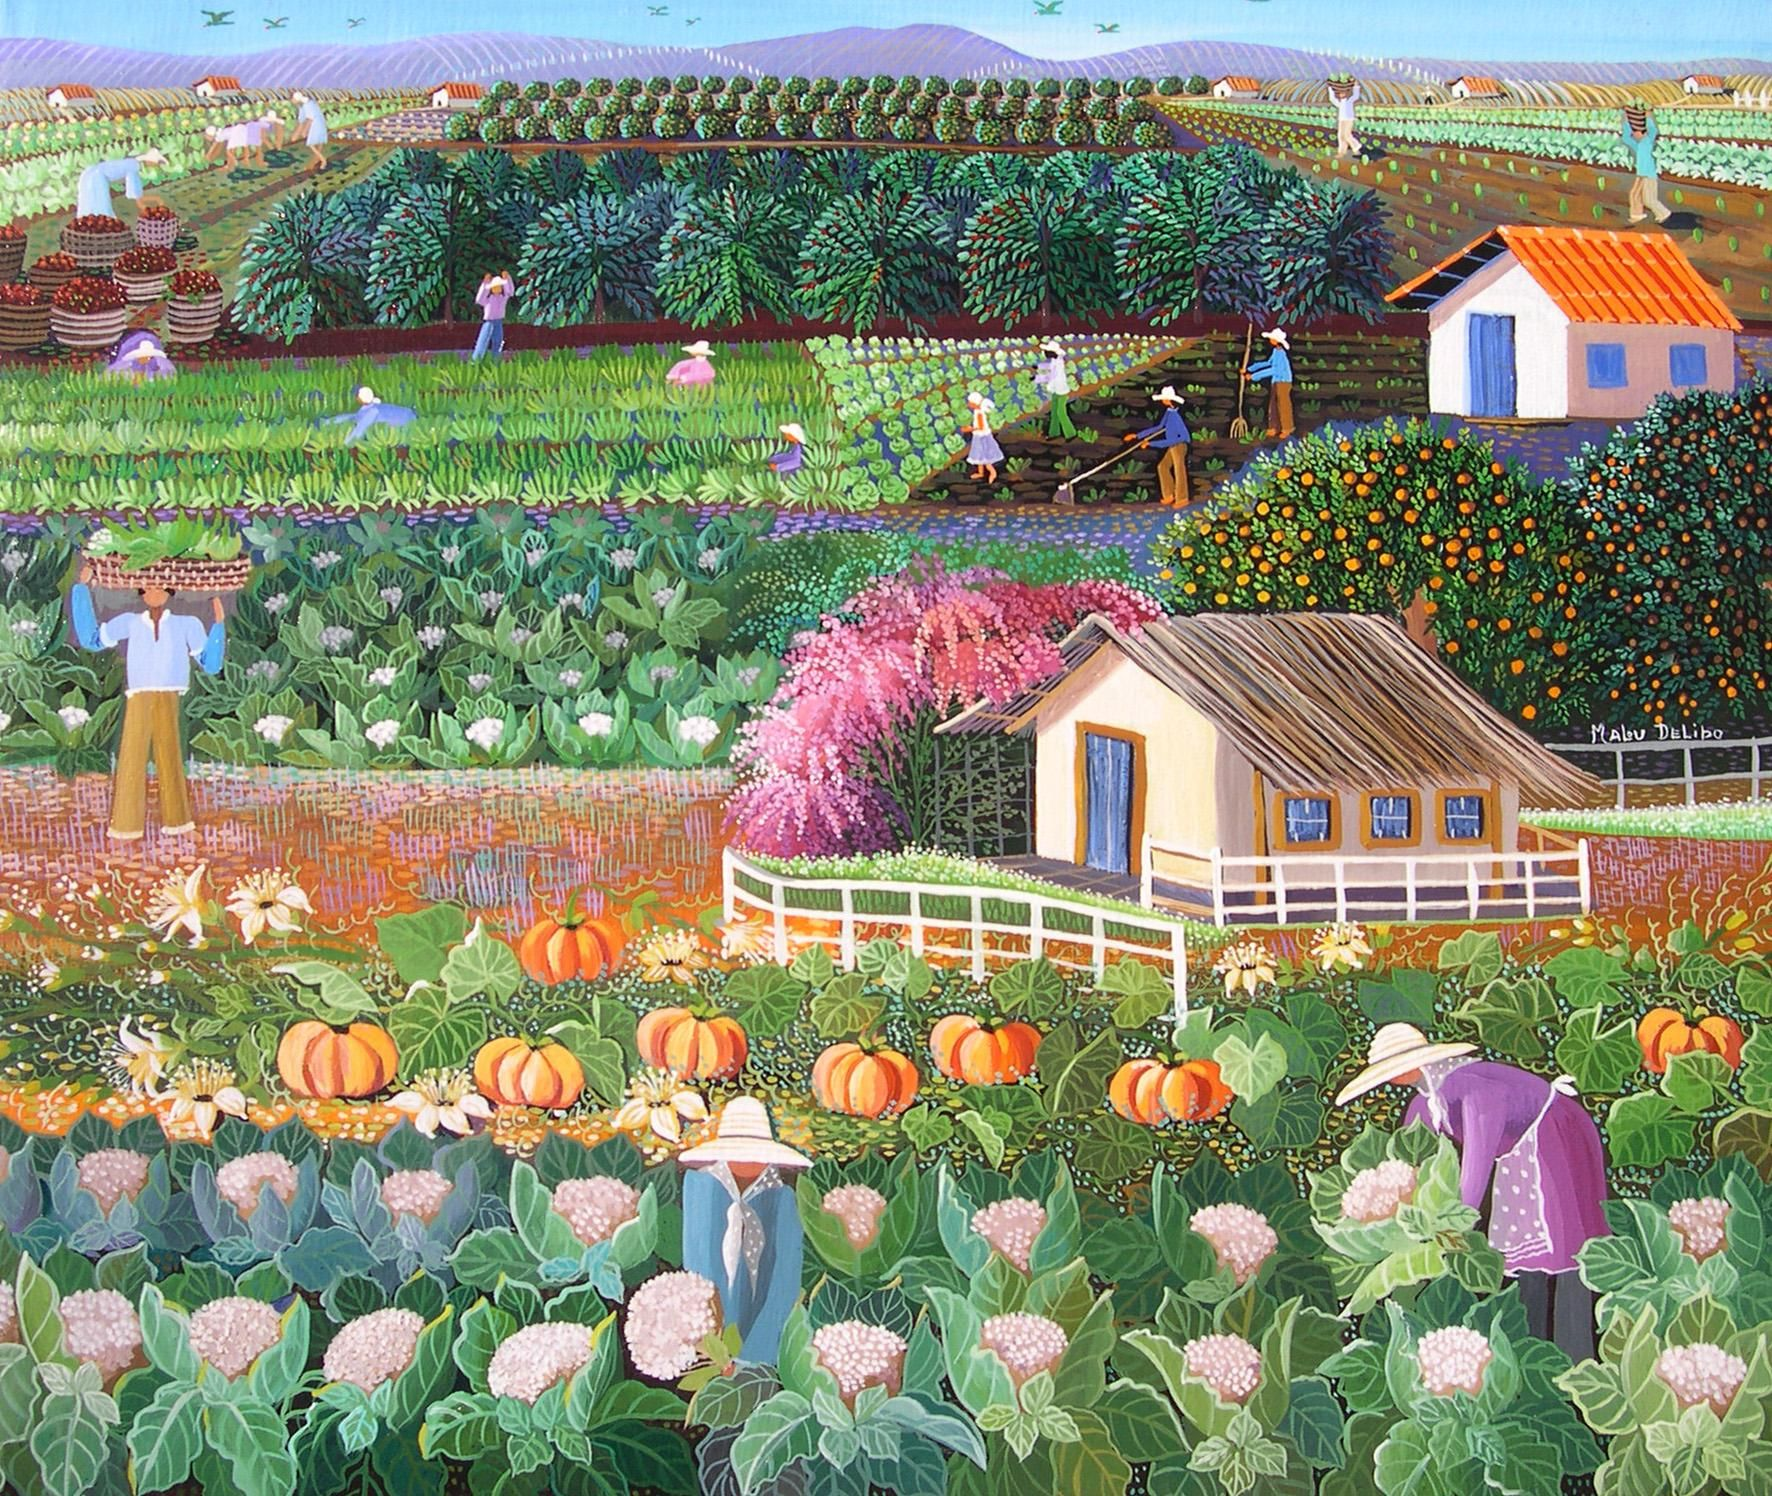 Guadalupe S Farm By Malu Delibo With Images Naive Art Art